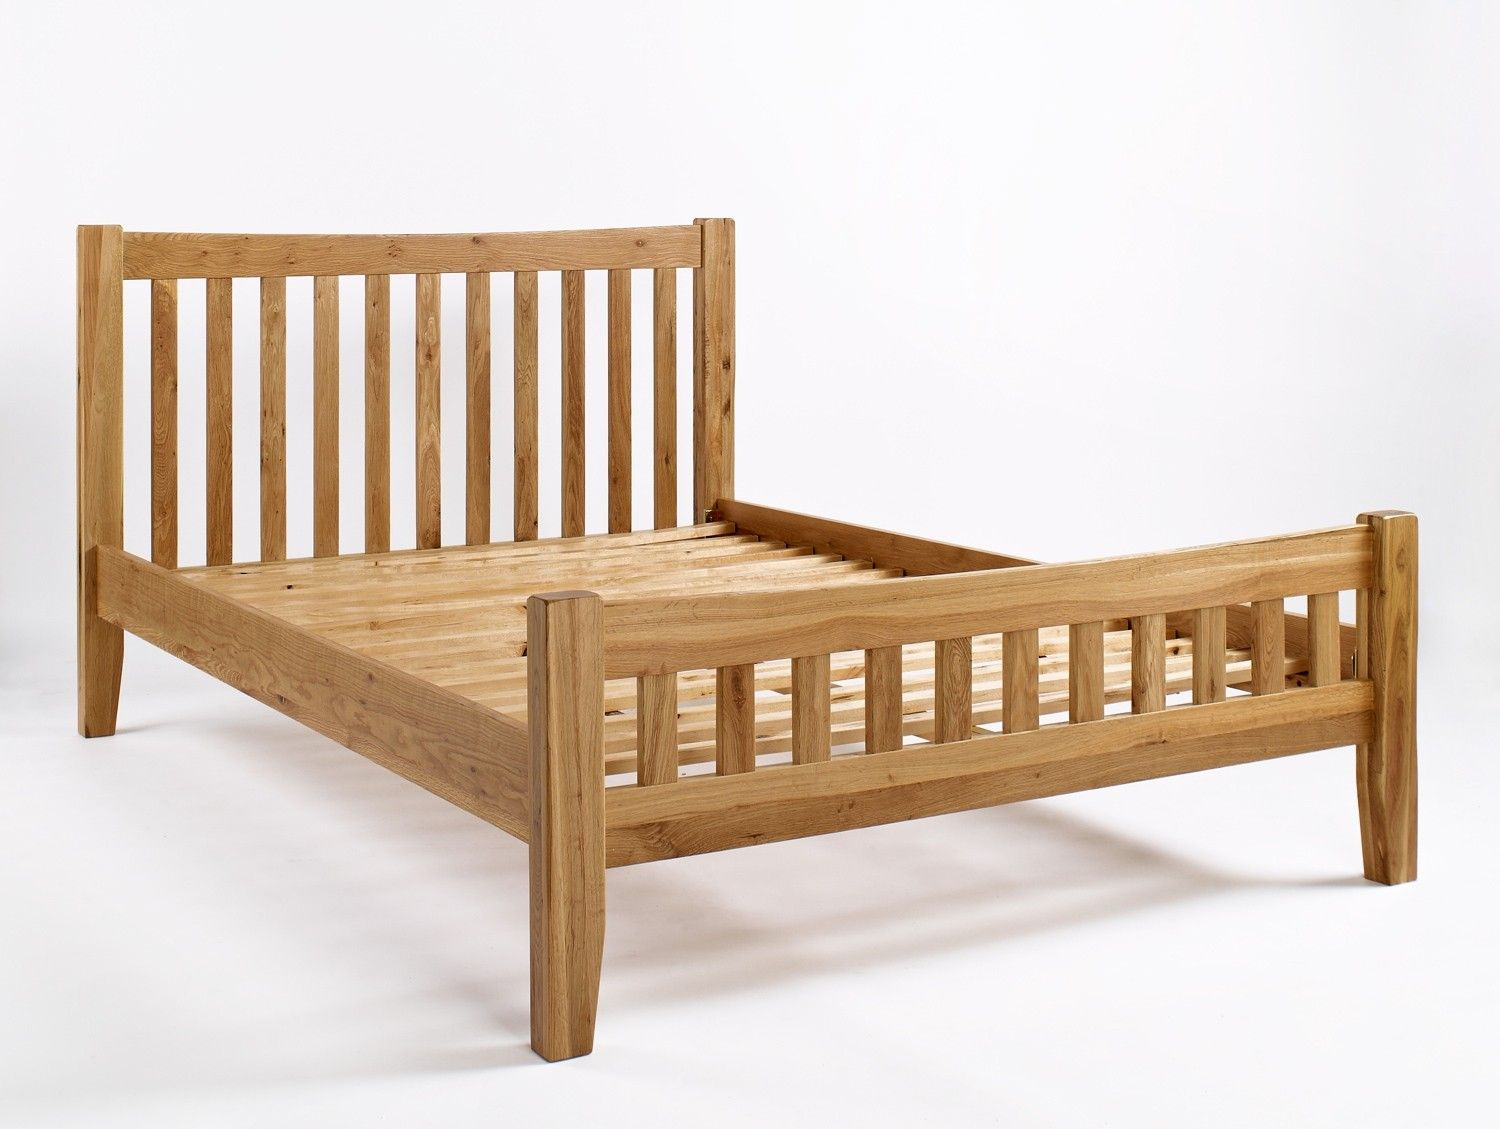 Westbury oak u bed is carefully made with dovetailed drawers and